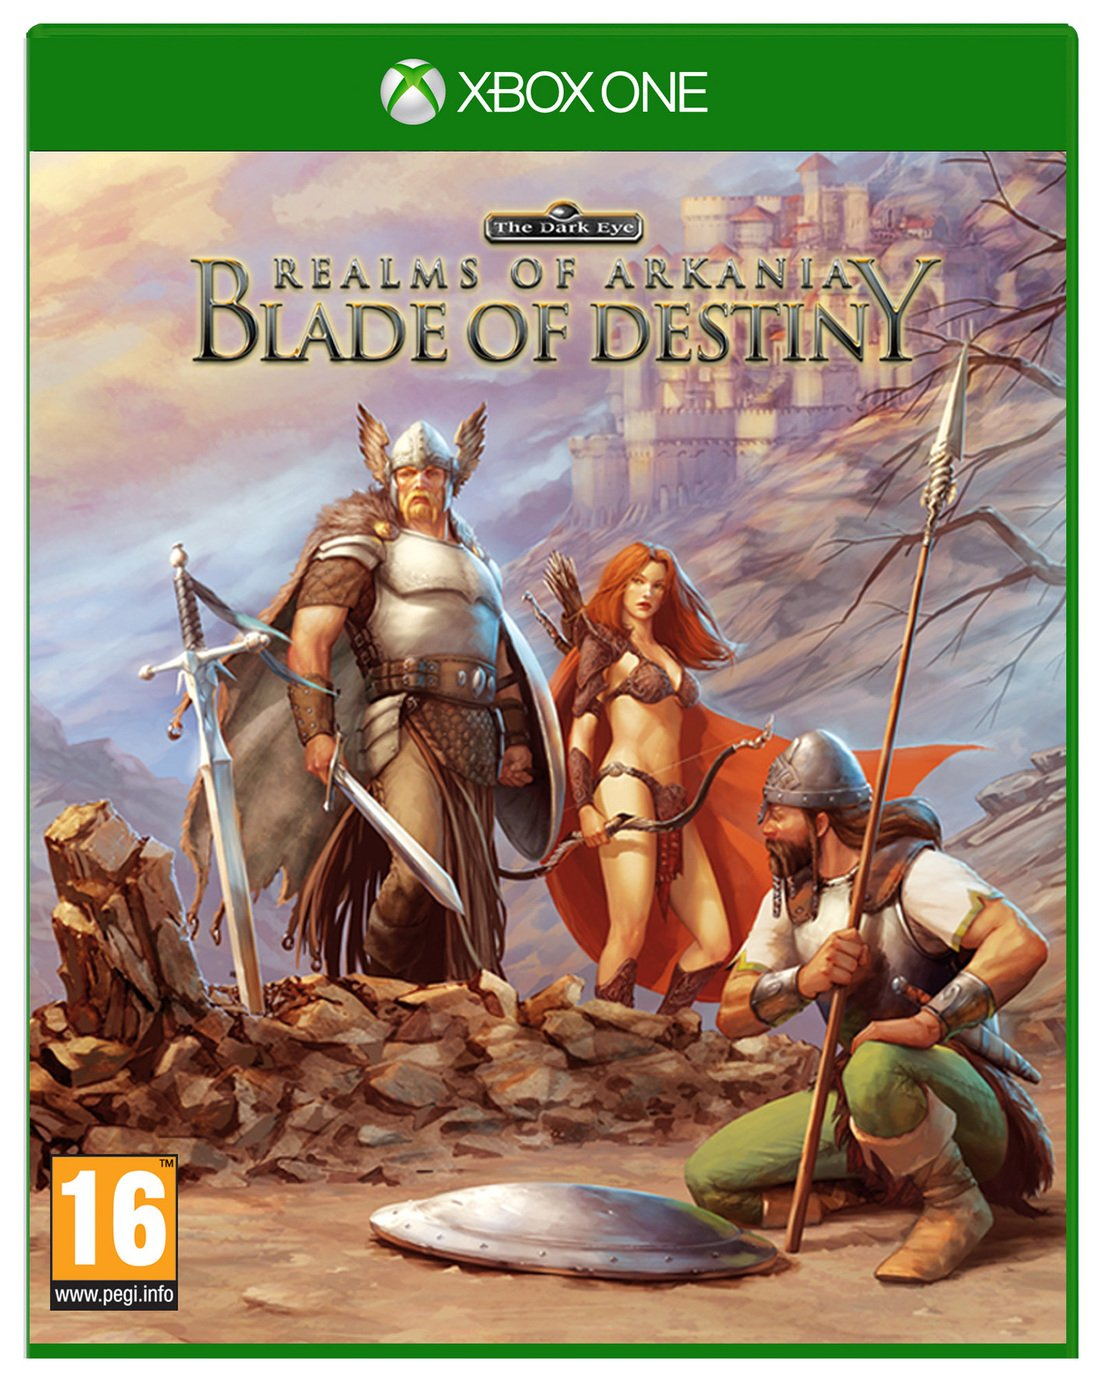 'Realms Of Arkania Blade Of Destiny Xbox One Game